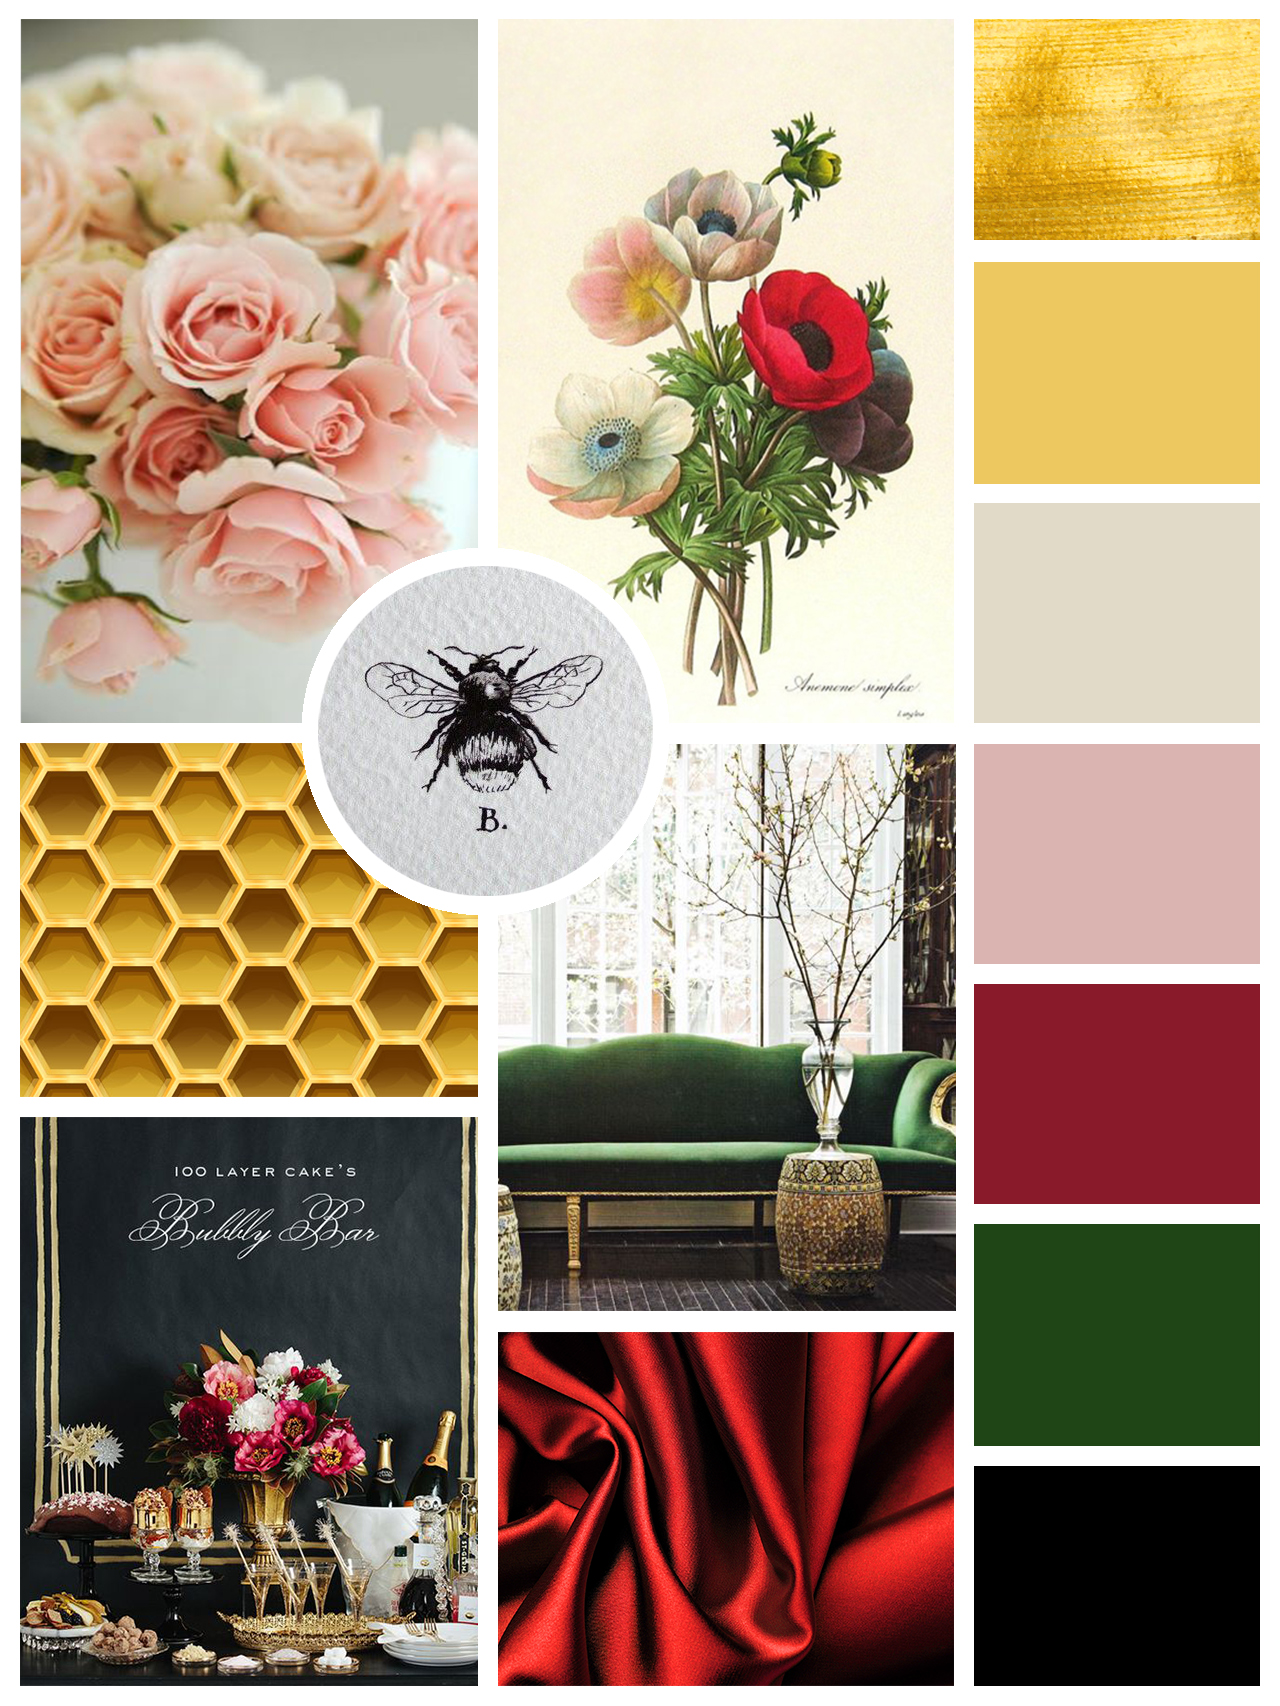 Images in mood board are not mine; they were sourced from various websites purely for inspirational purposes.